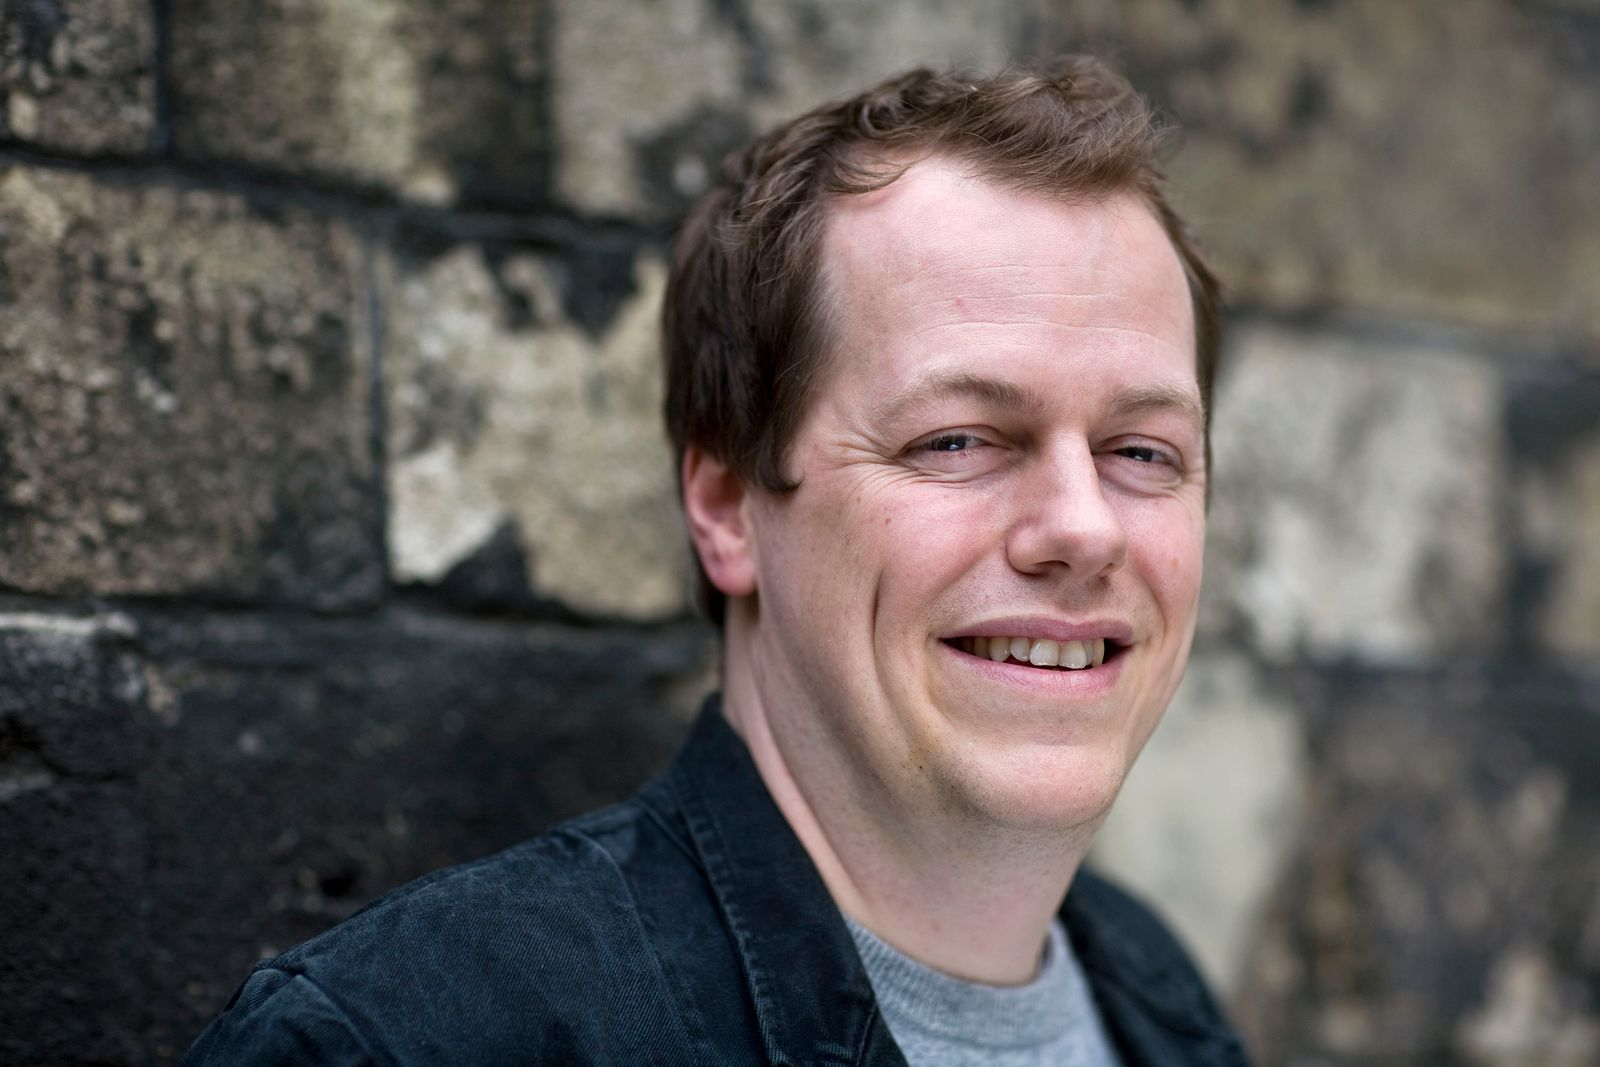 Tom Parker Bowles poses for a portrait at the Oxford Literary Festival in Christ Church, on March 26, 2010   Photo: Getty Images